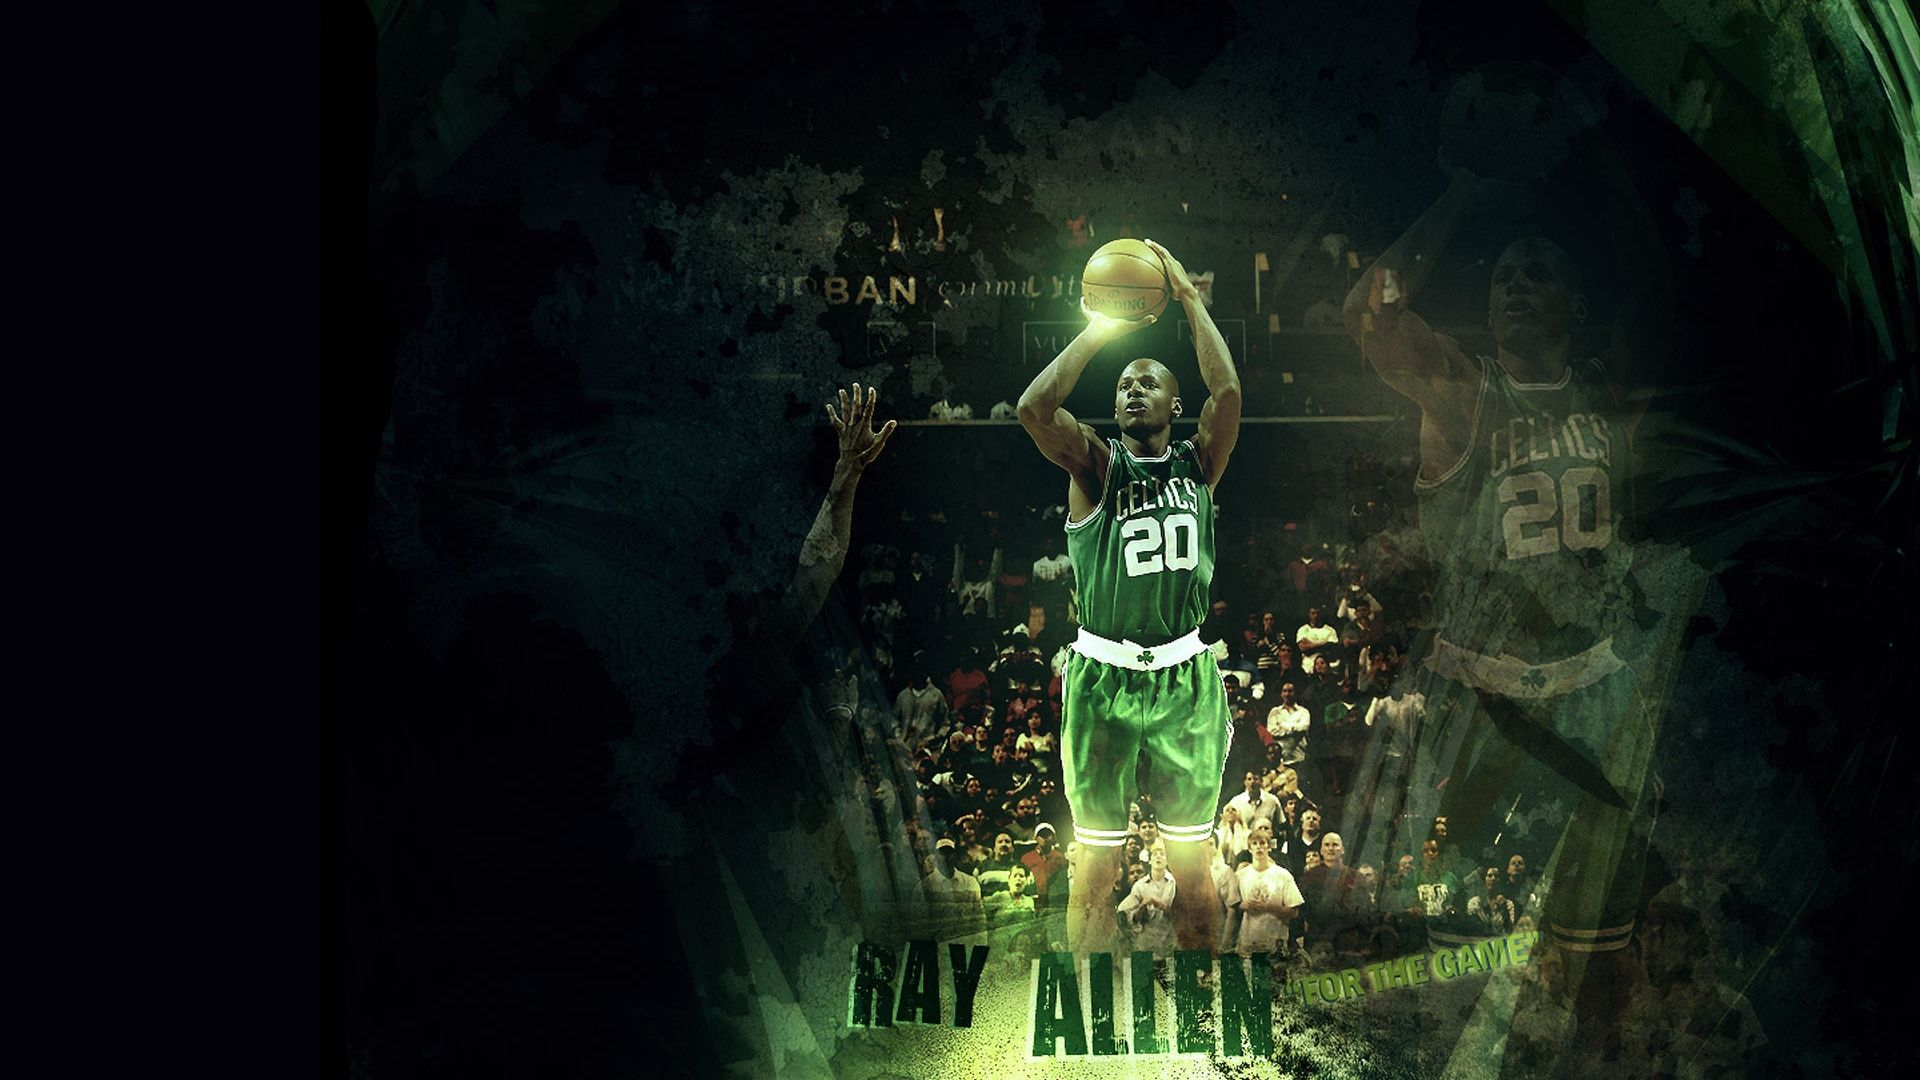 walter ray allen, basketball, player - http://www.wallpapers4u.org/walter-ray-allen-basketball-player/